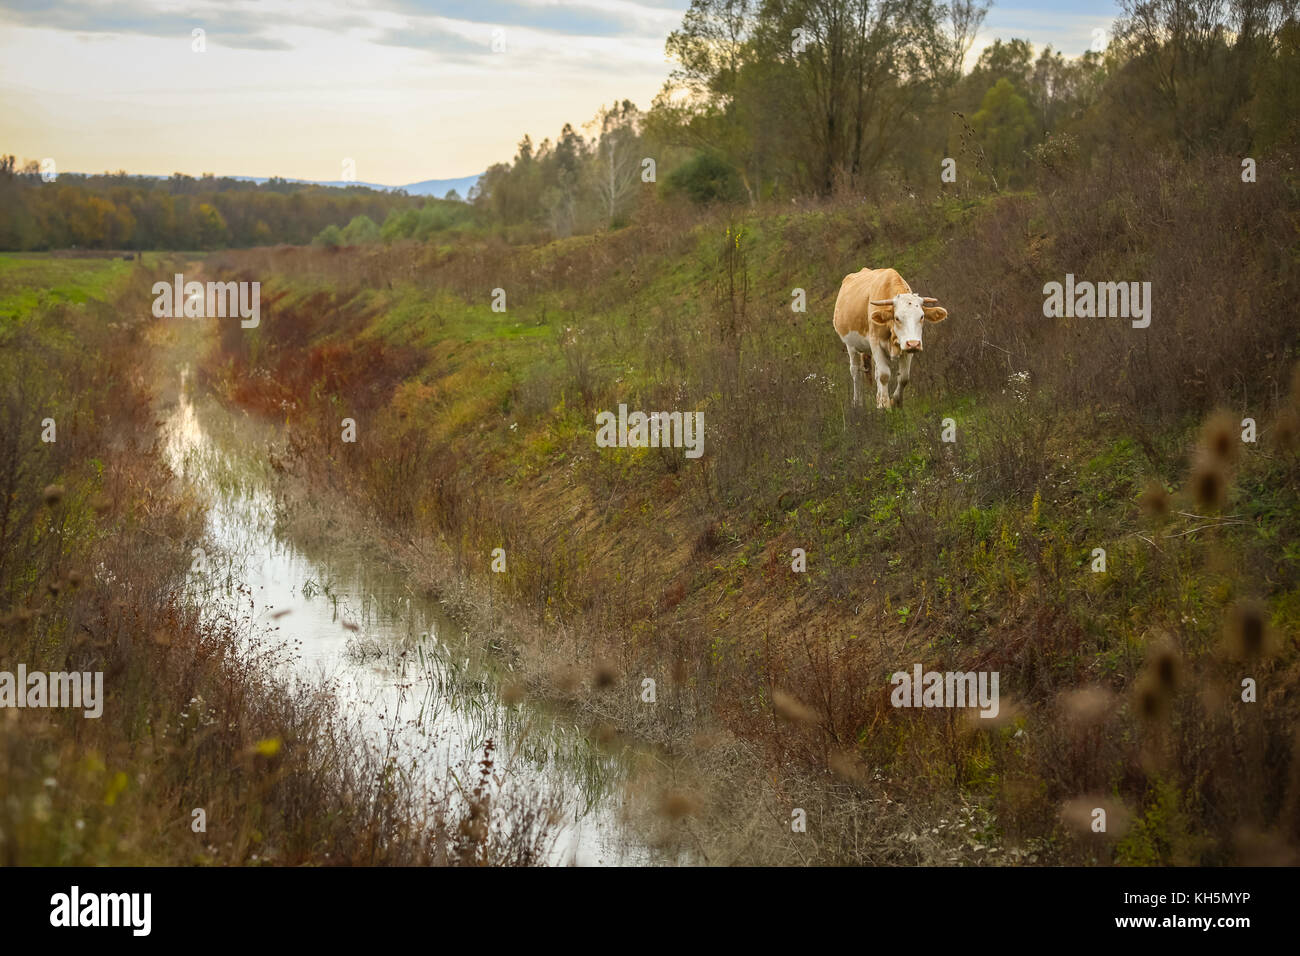 A view of a cow in countryside walking next to a stream at sunset. - Stock Image